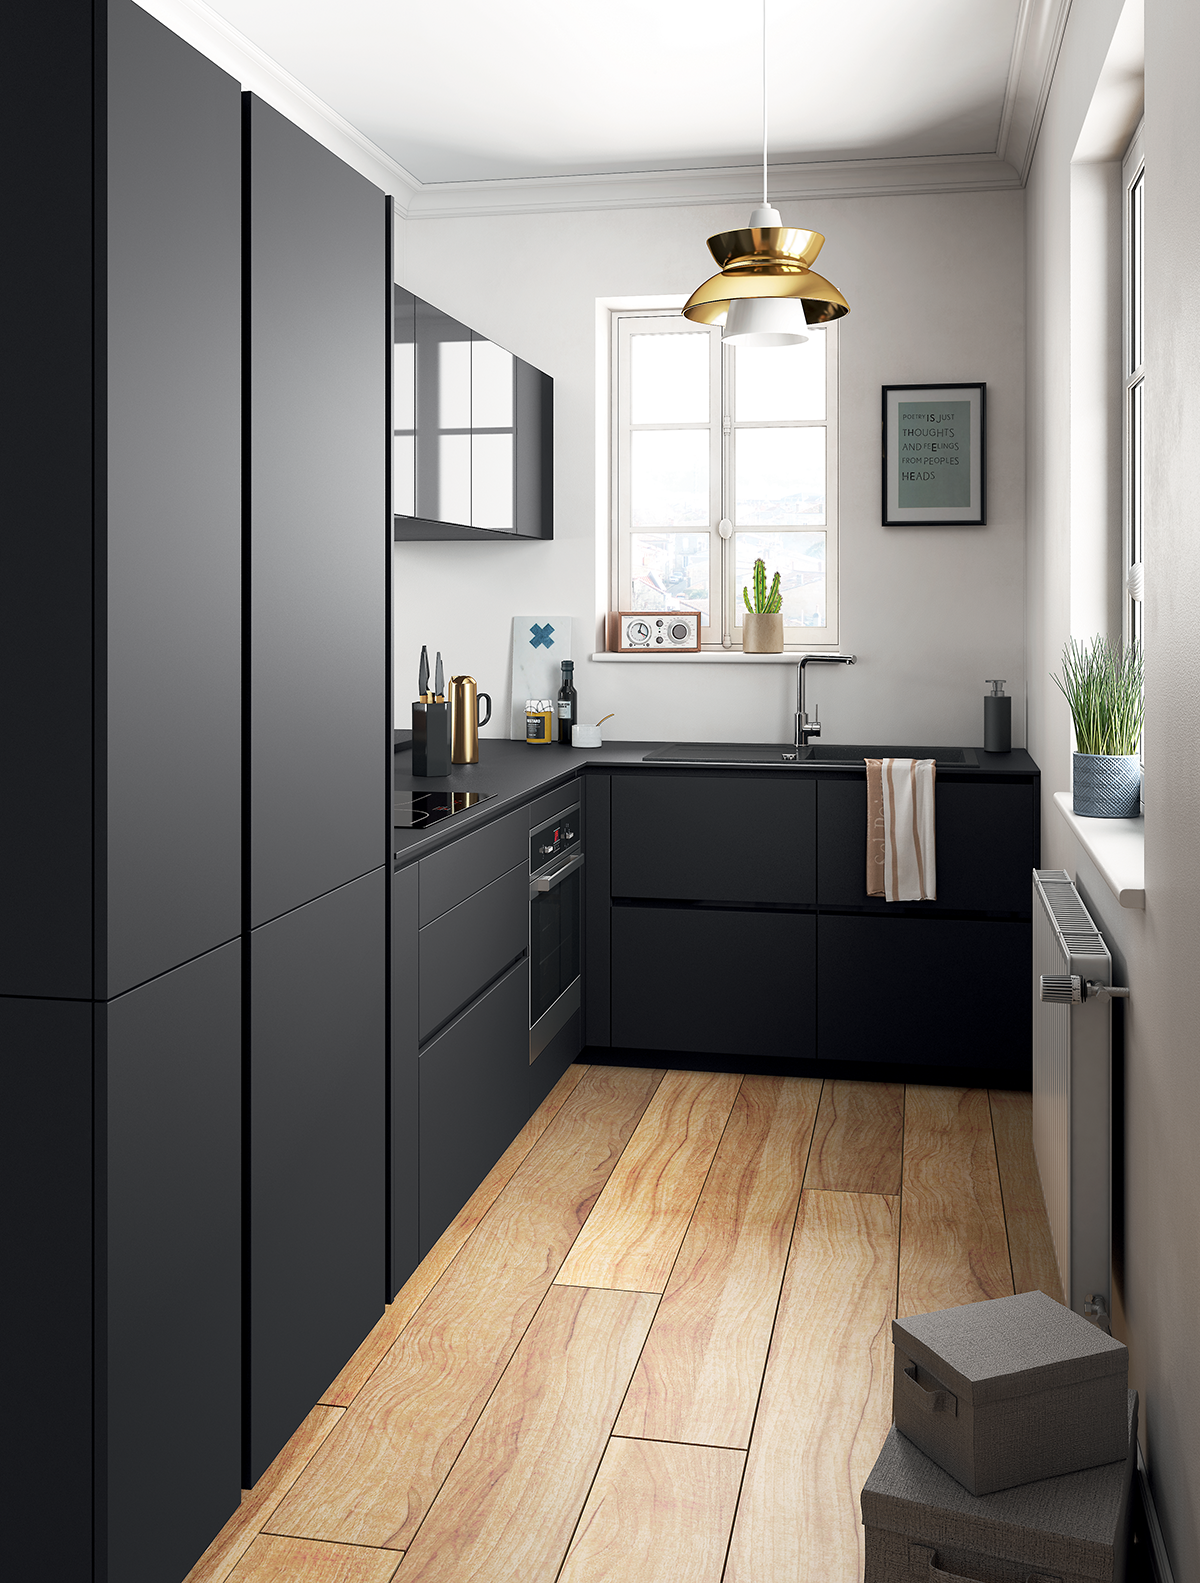 The 20 Best Ideas for Modern Kitchen Design – Best Home Ideas and Inspiration